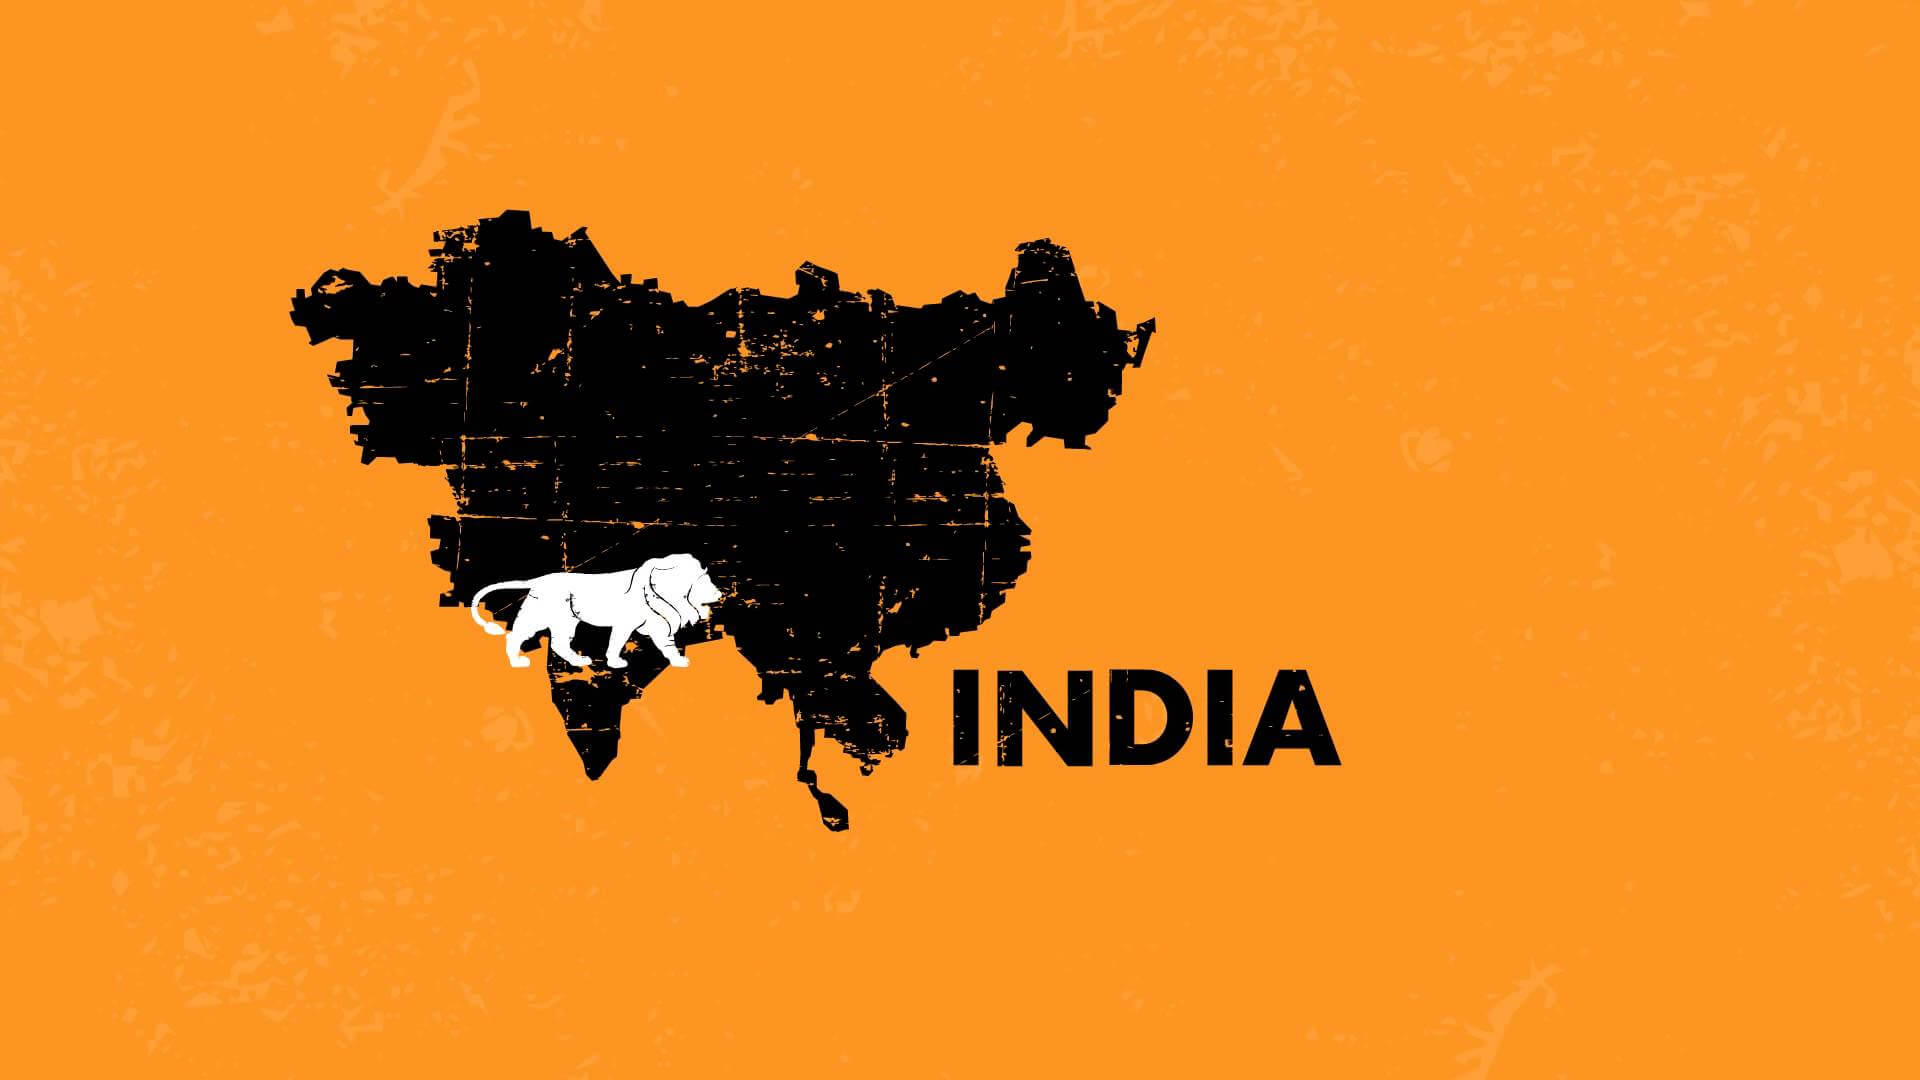 Size and Economic Role of the Indian State